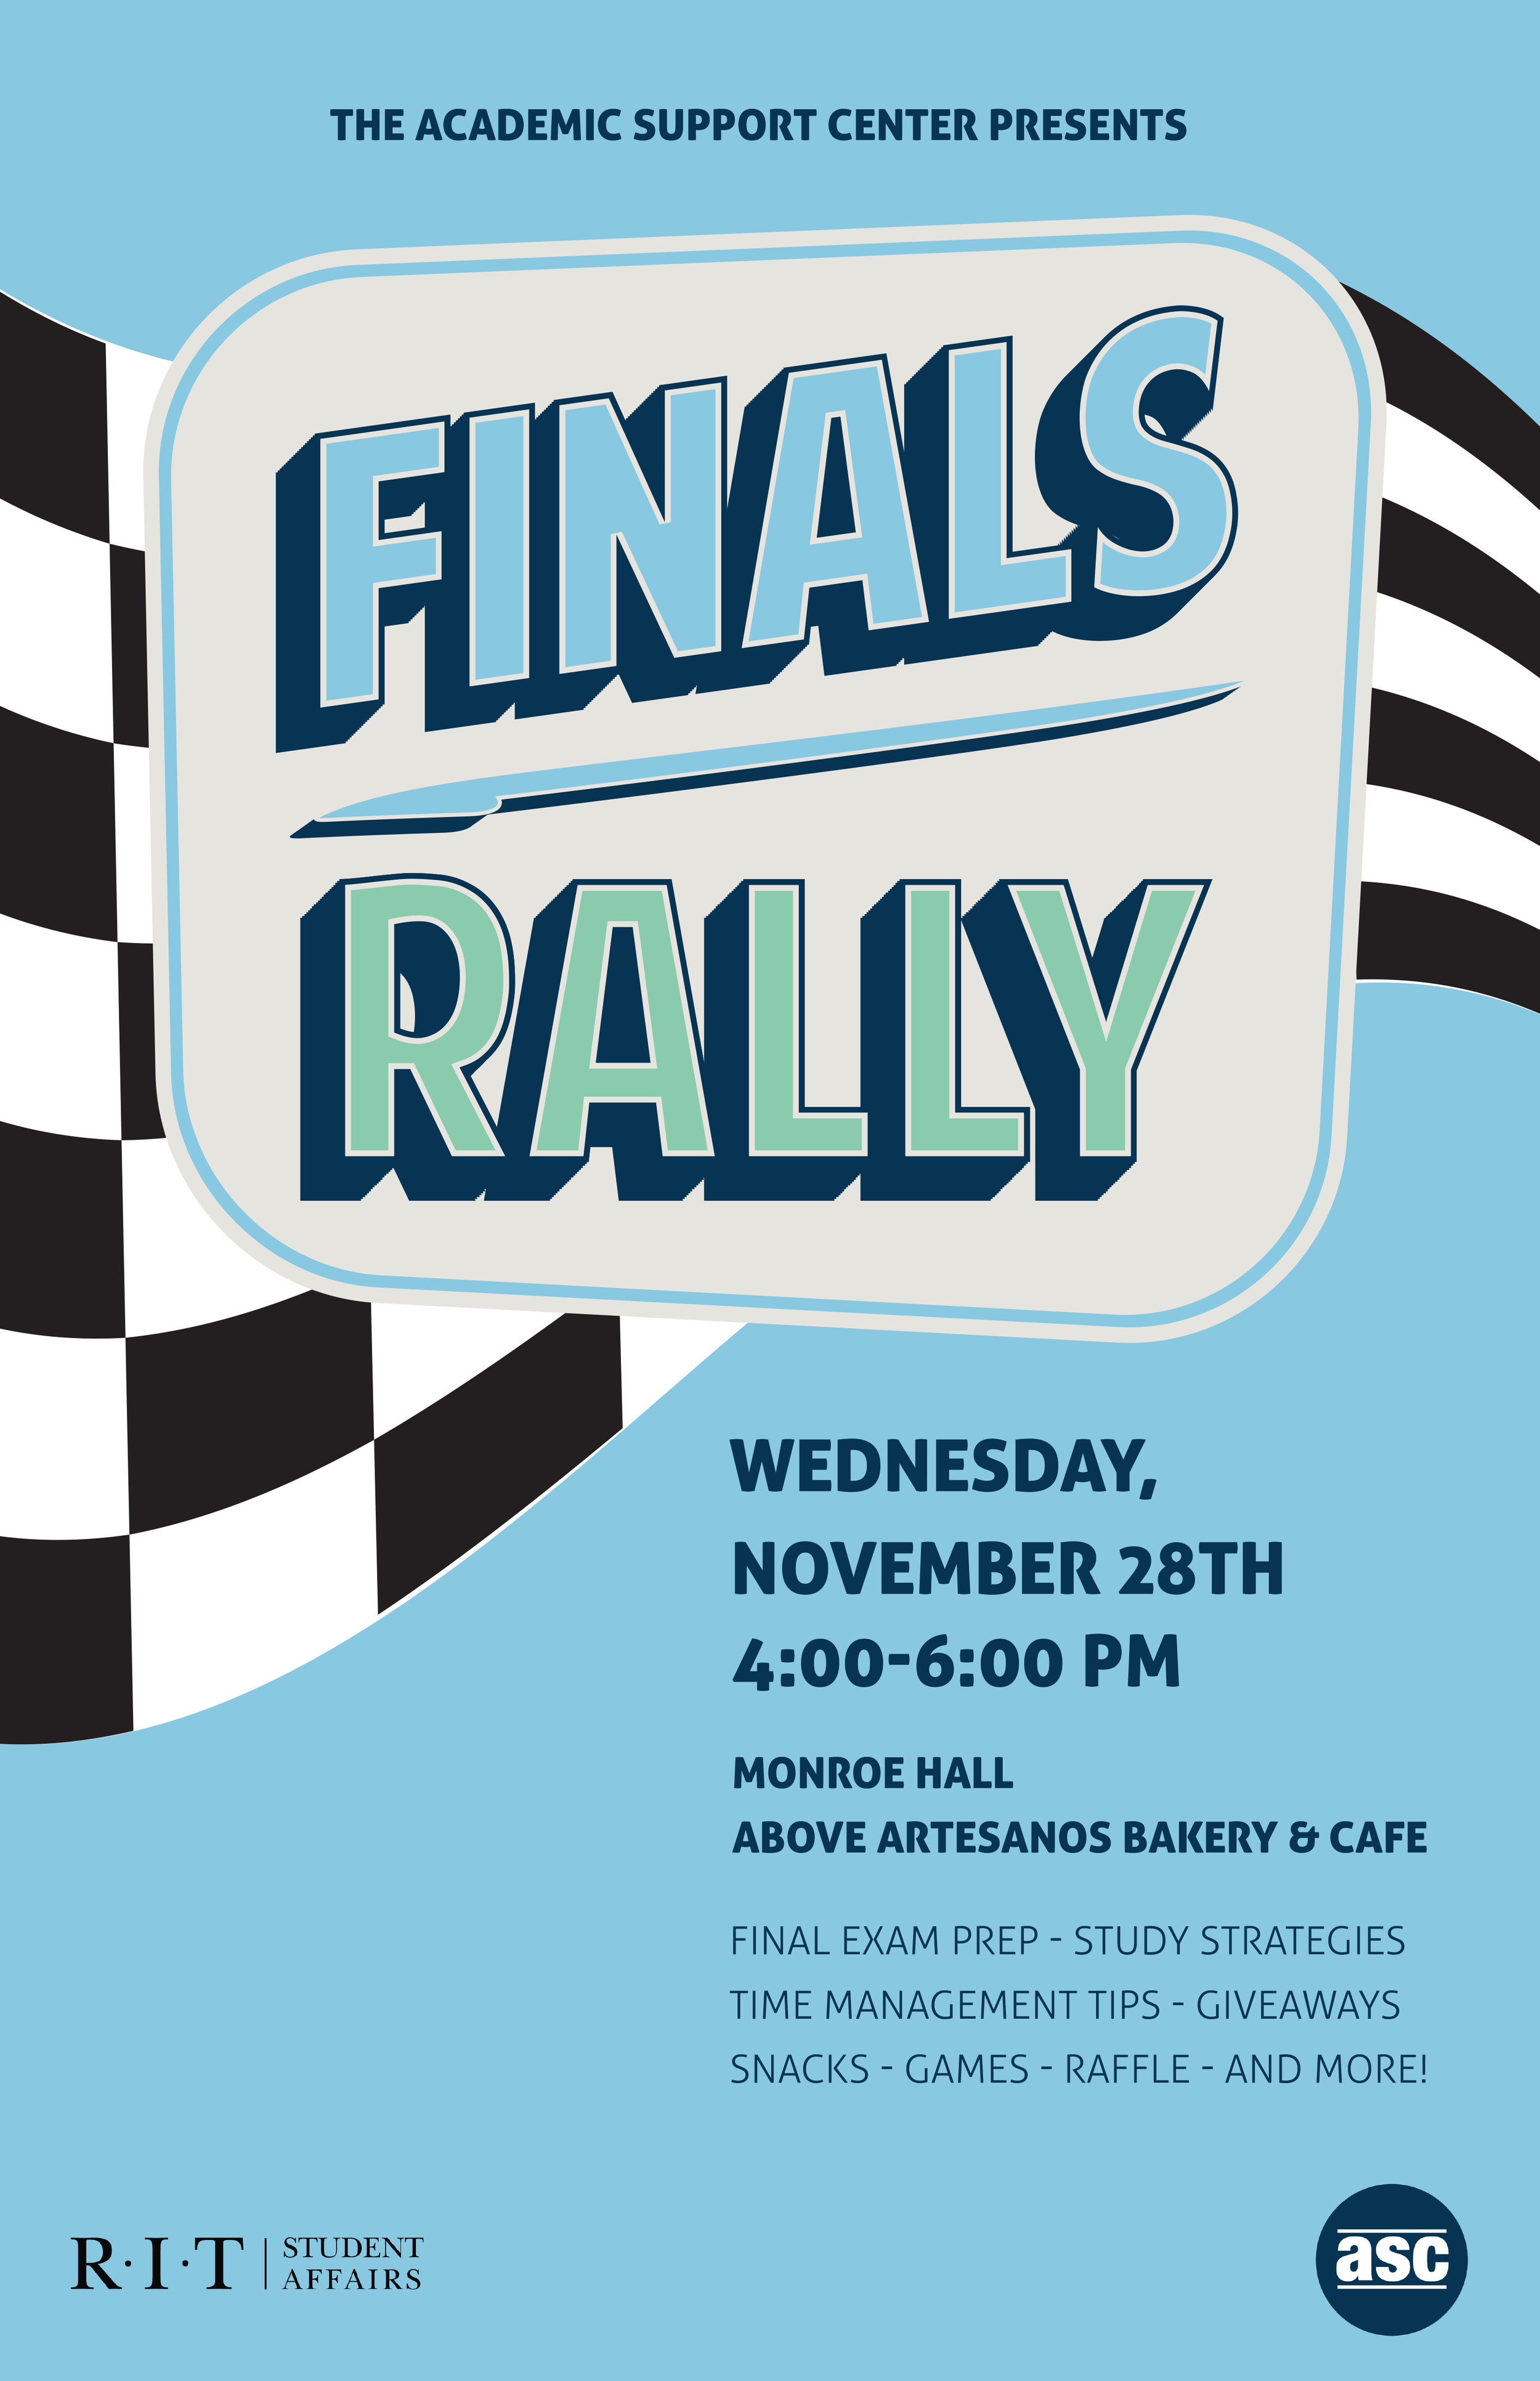 FINALS RALLY